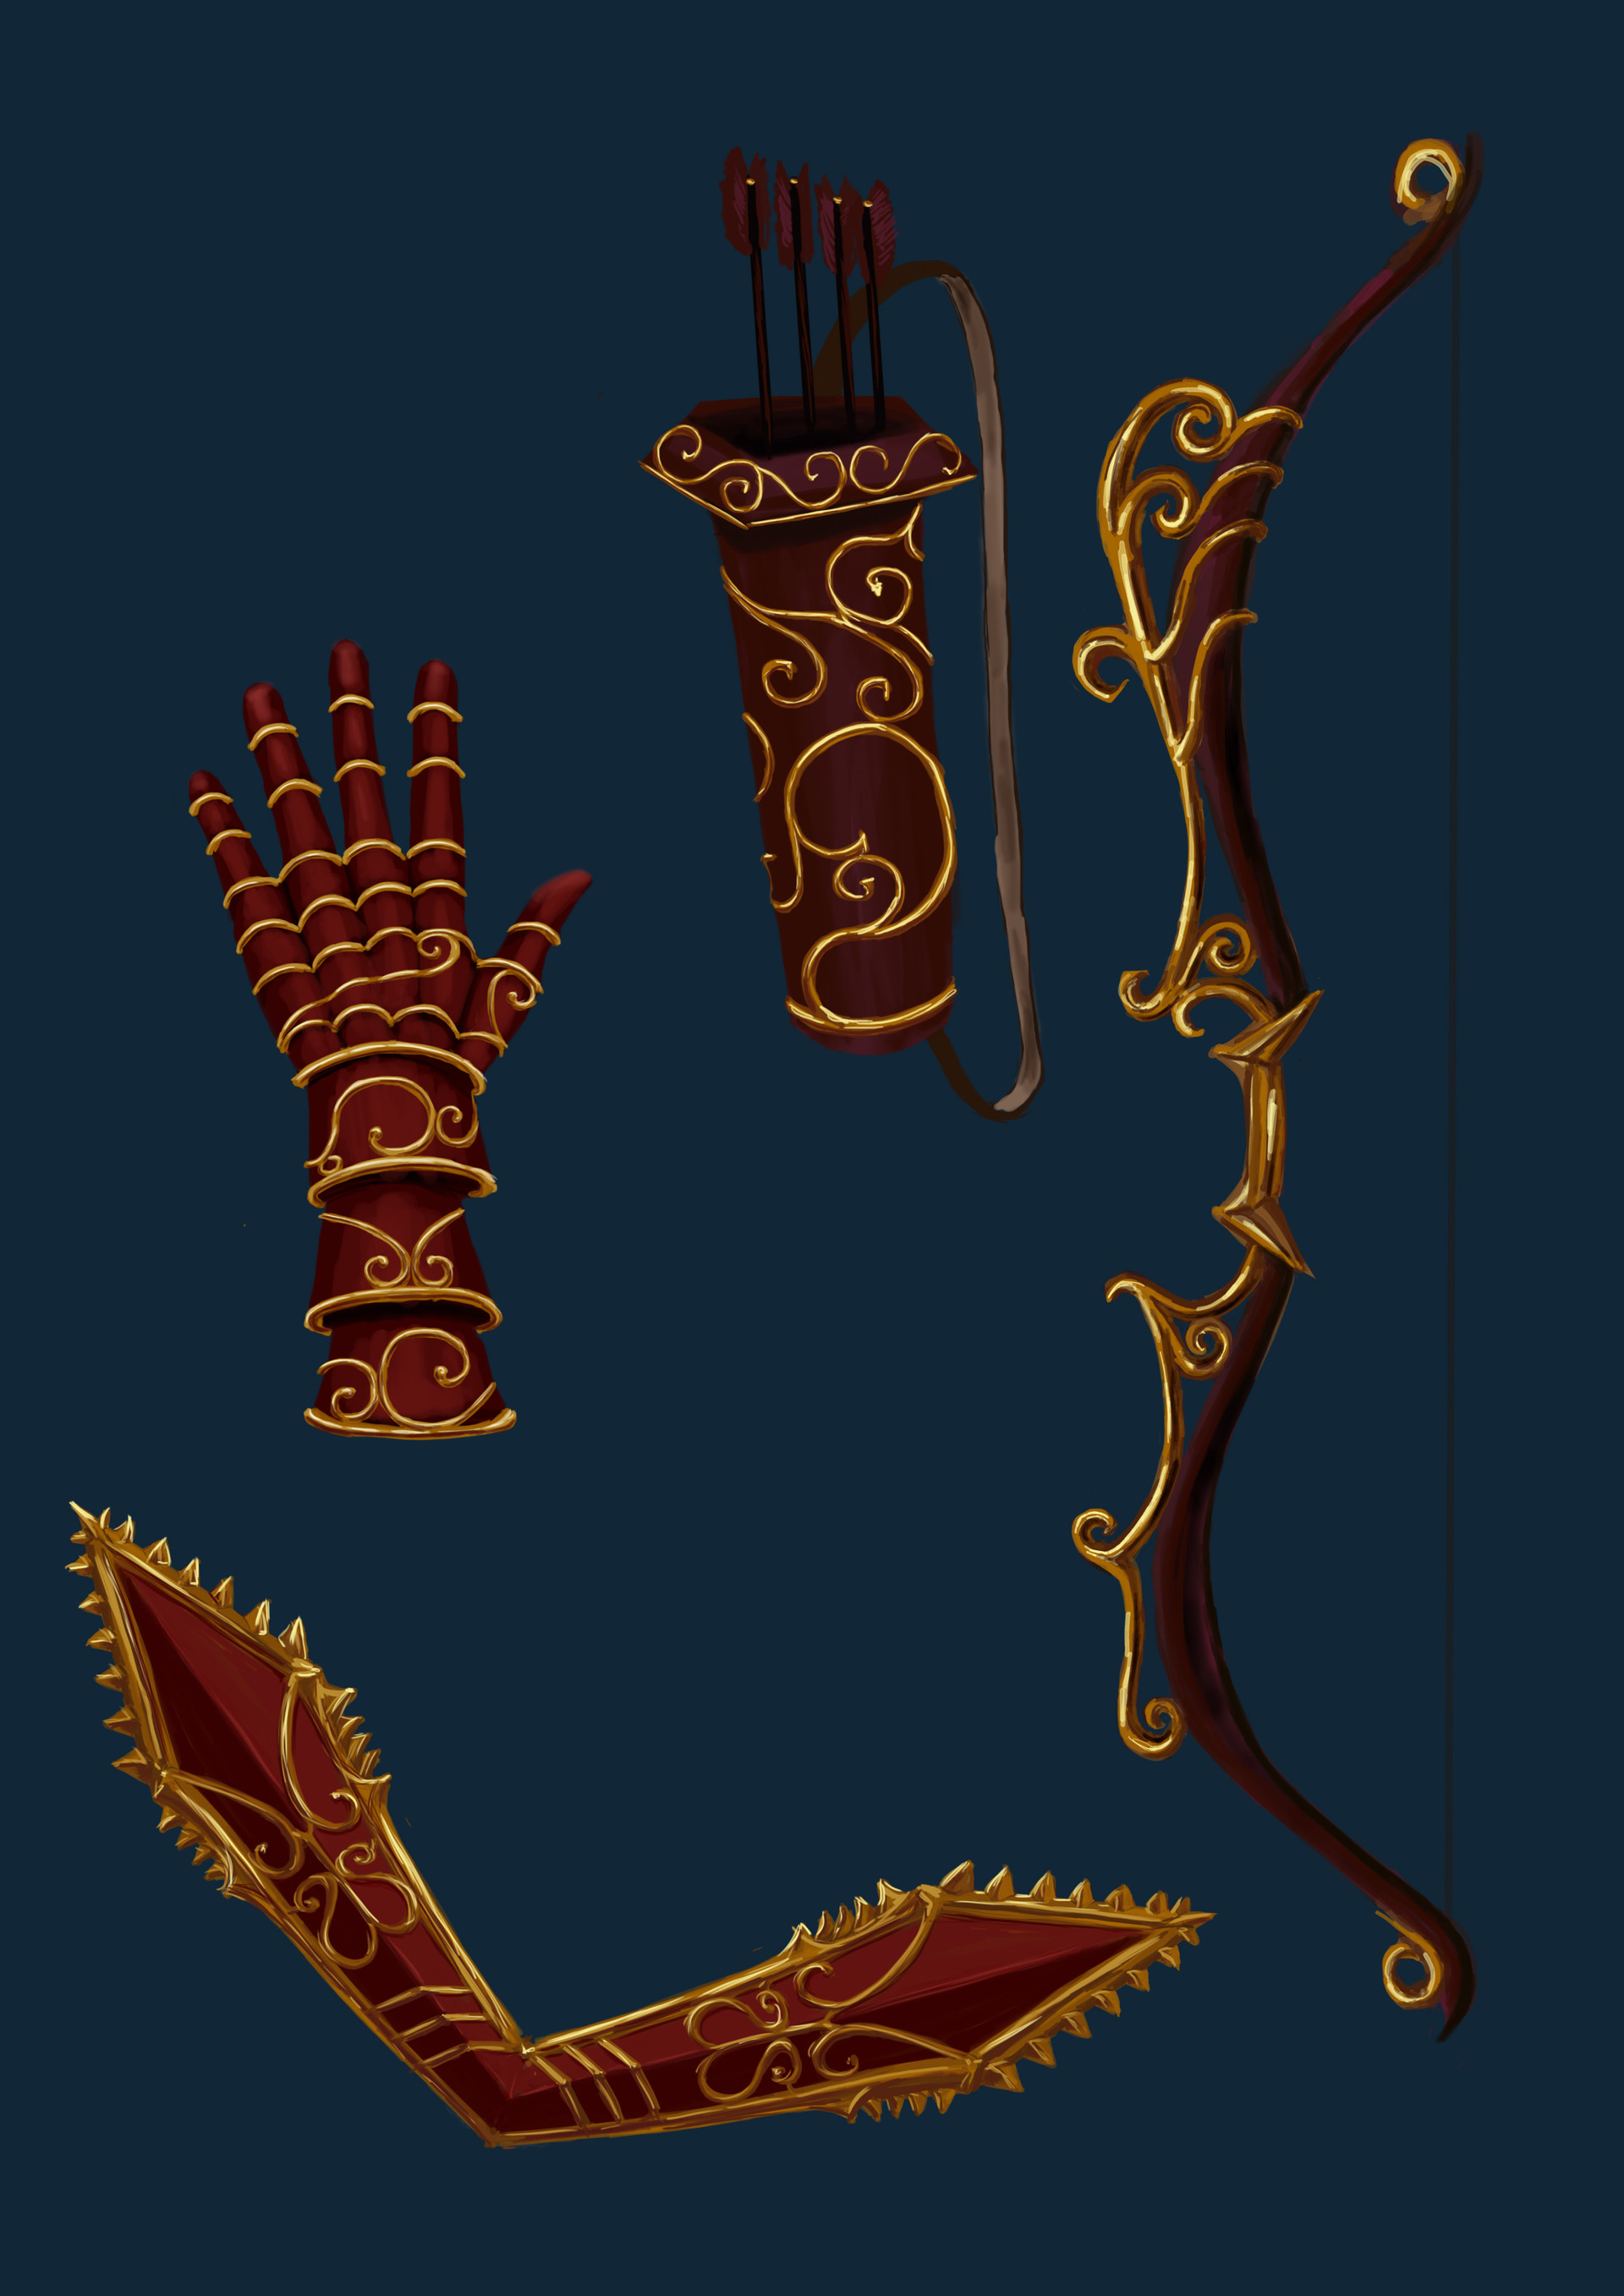 Gabriela shelkalina weapon design range weapons